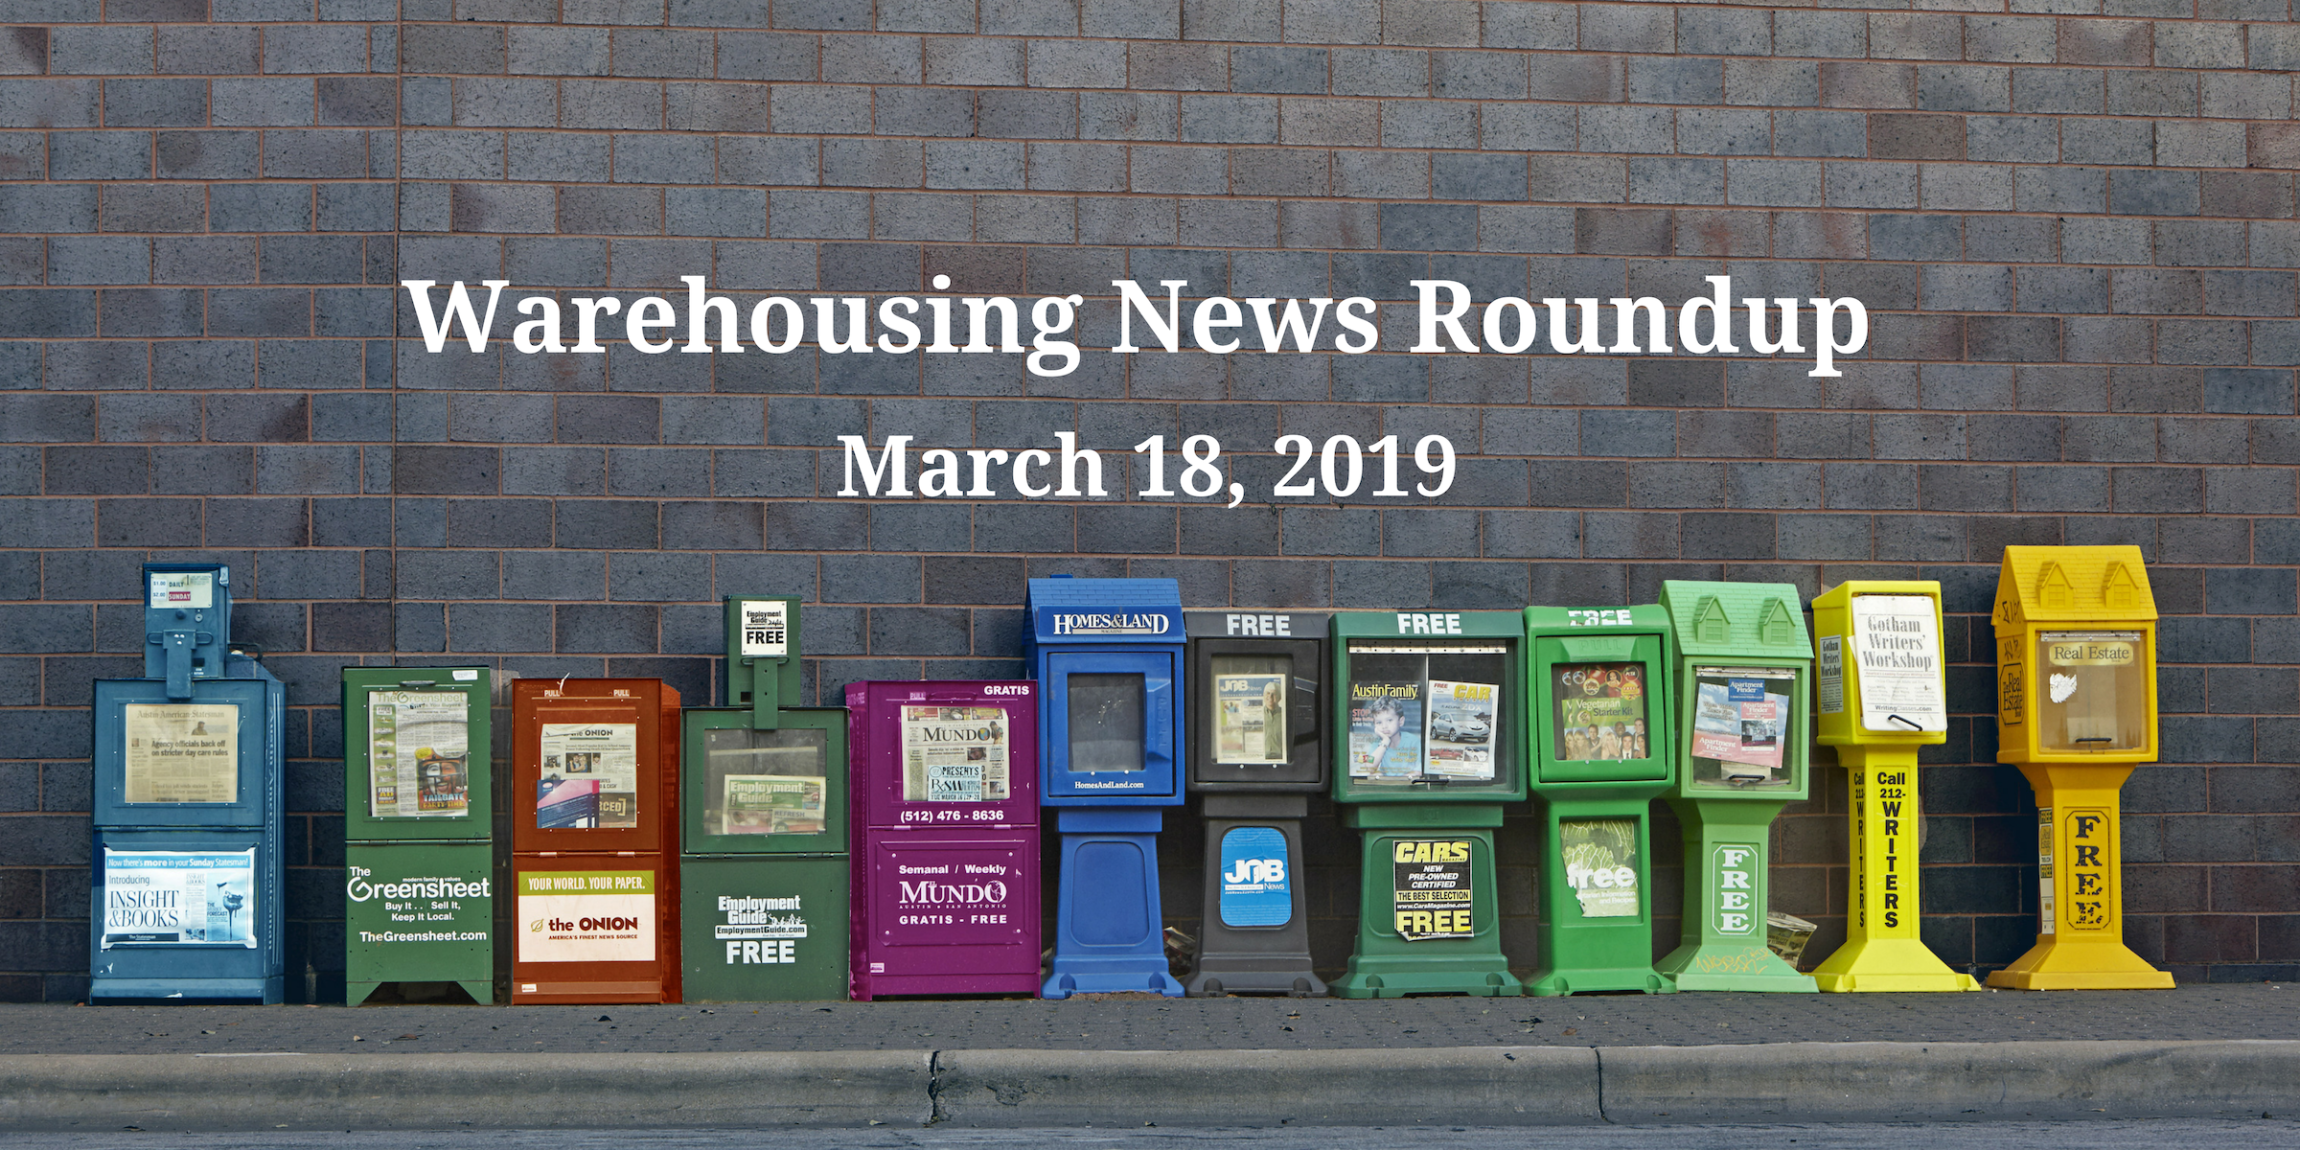 Warehousing News Roundup: March 18, 2019